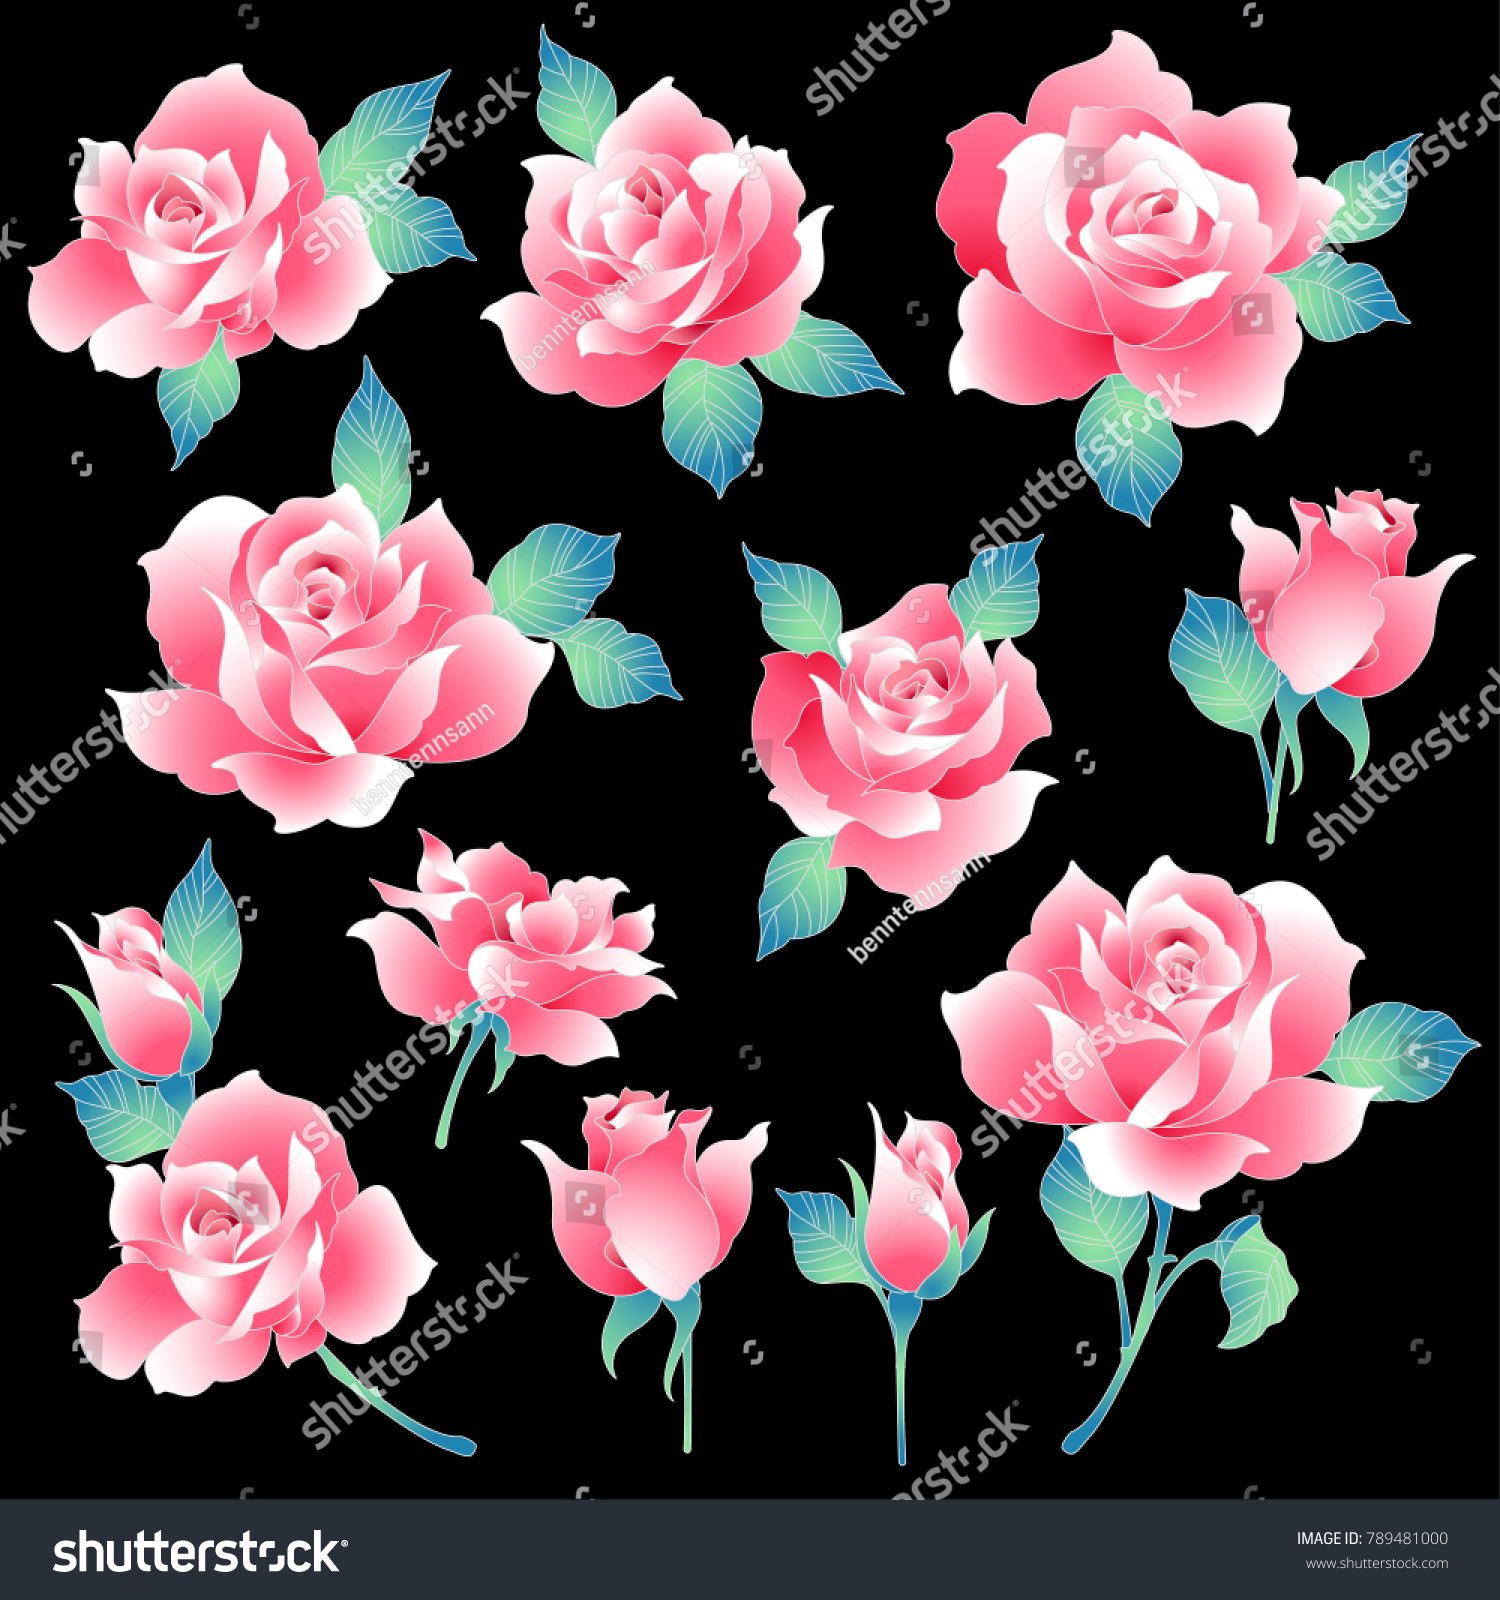 Rose flower illustration made beautiful rose stock vector royalty rose flower illustration i made a beautiful rose a painting izmirmasajfo